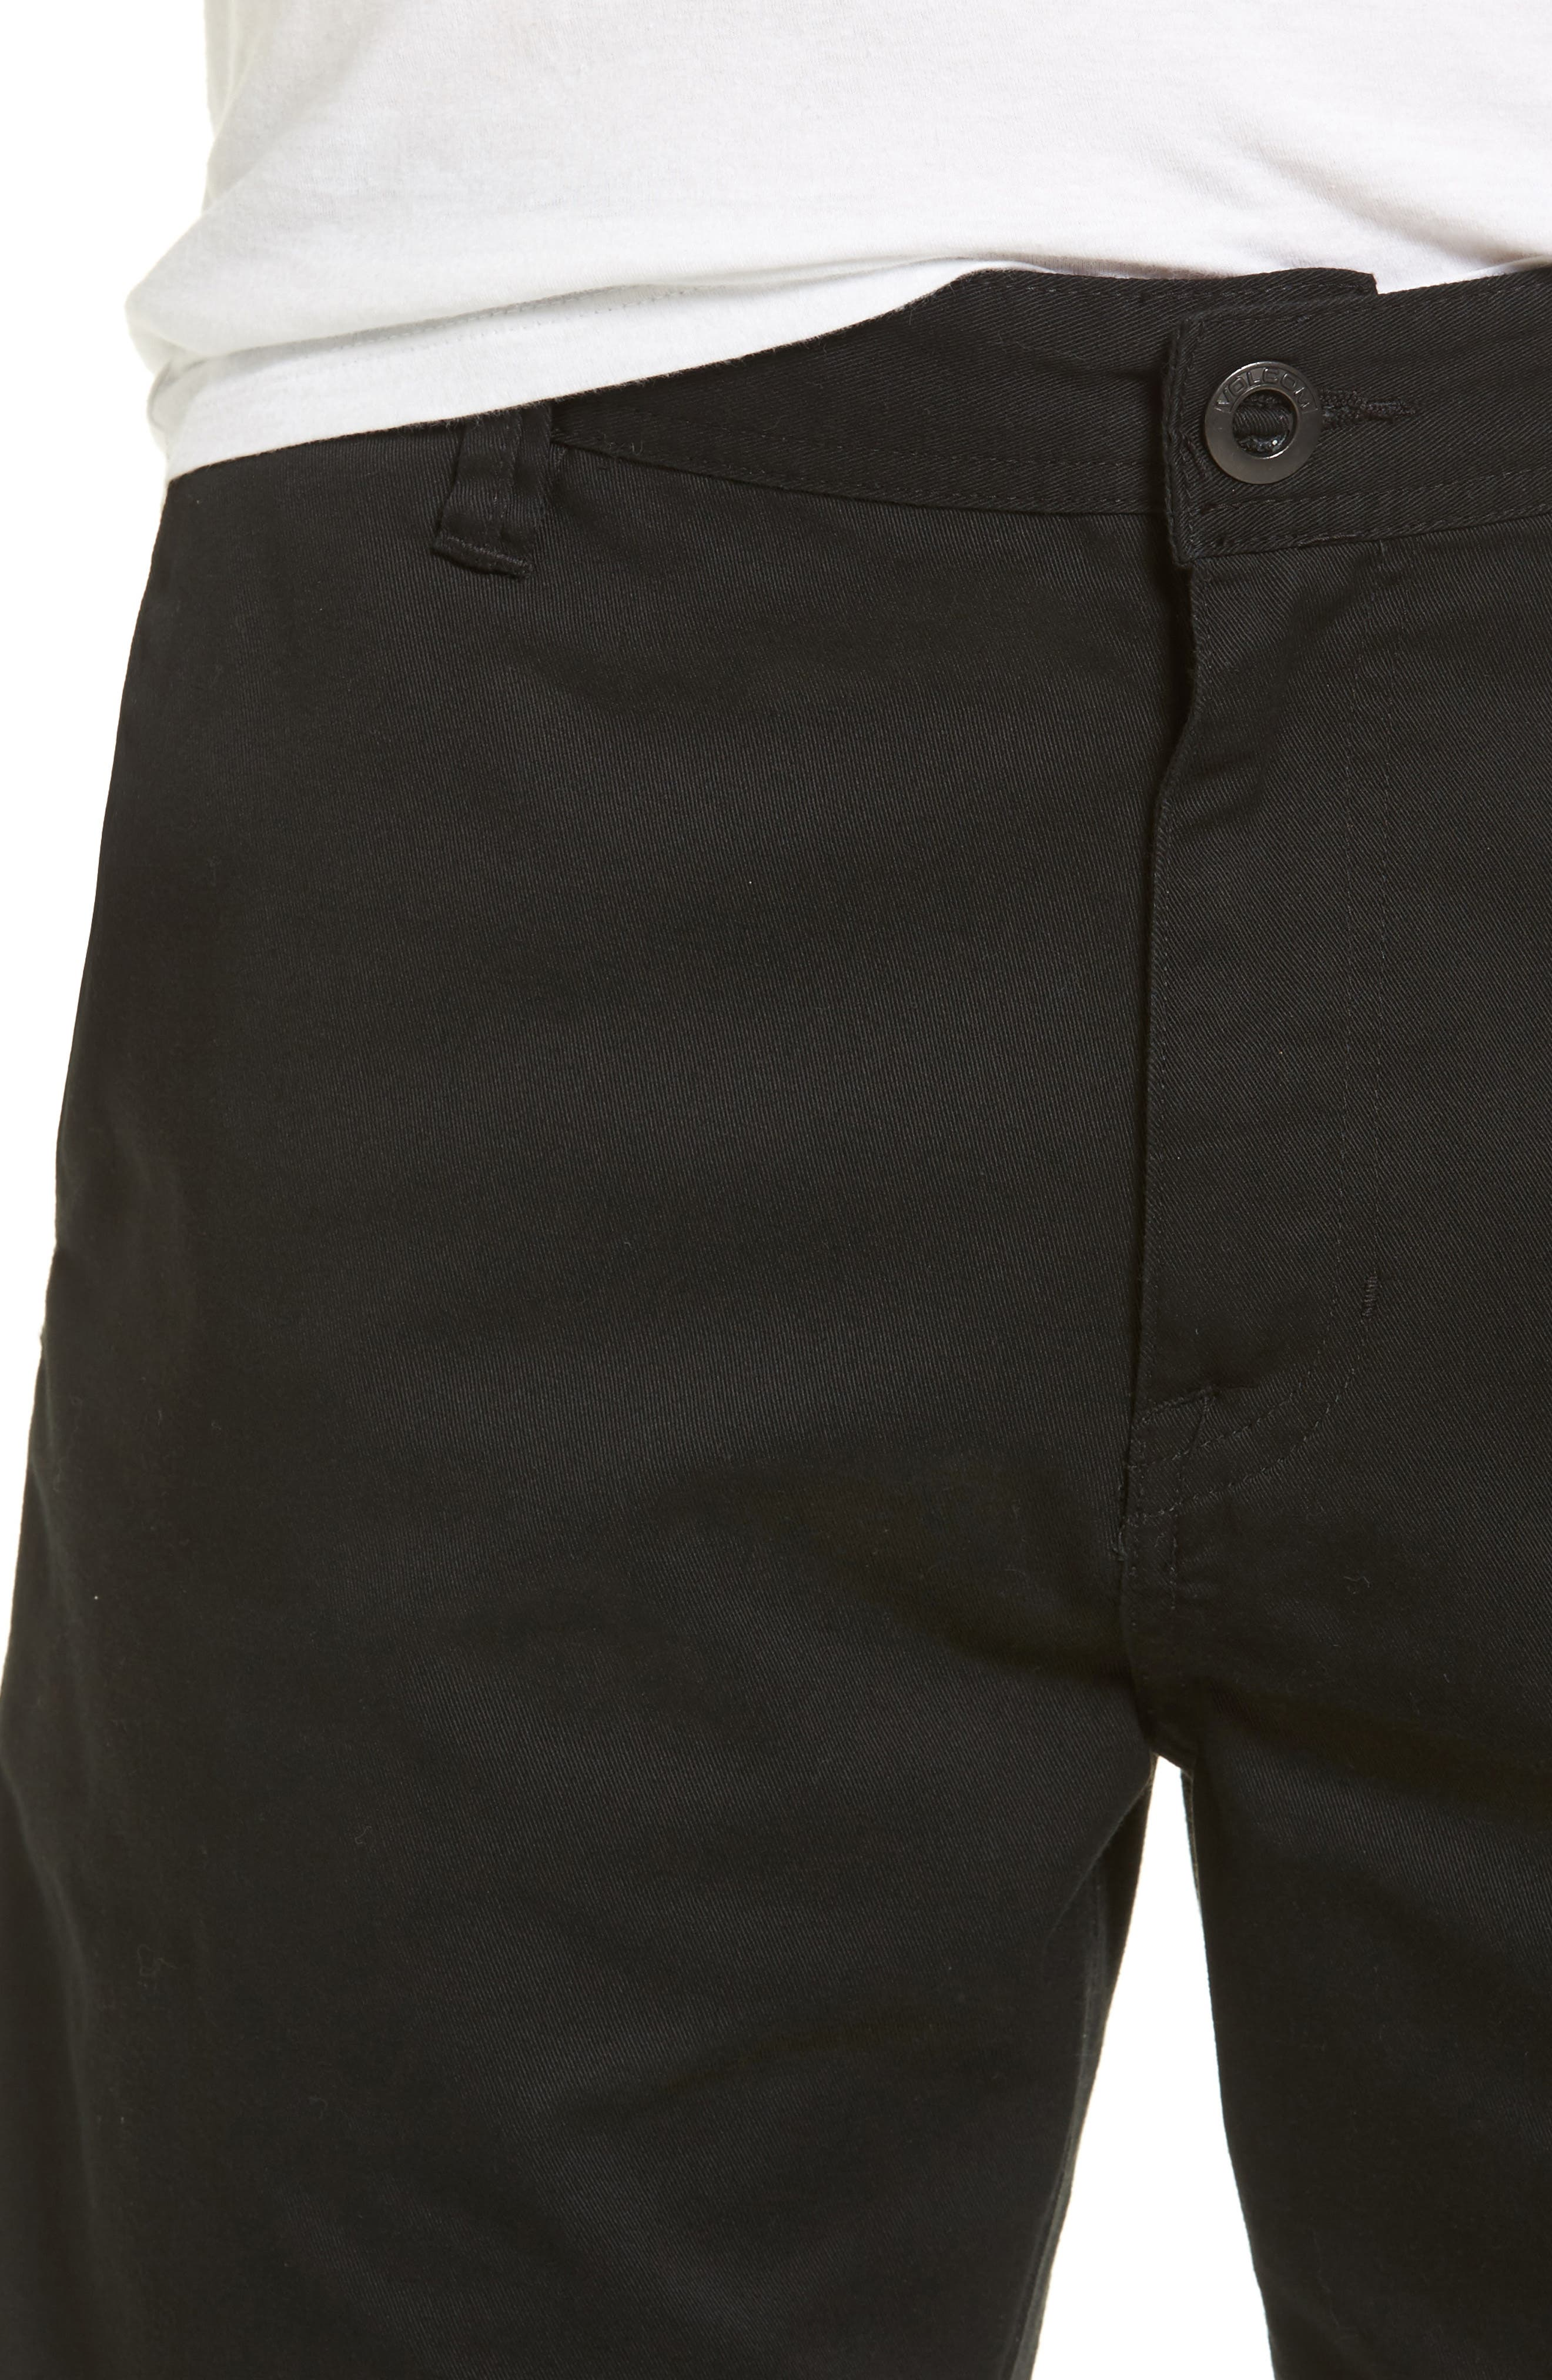 Modern Chino Shorts,                             Alternate thumbnail 4, color,                             001